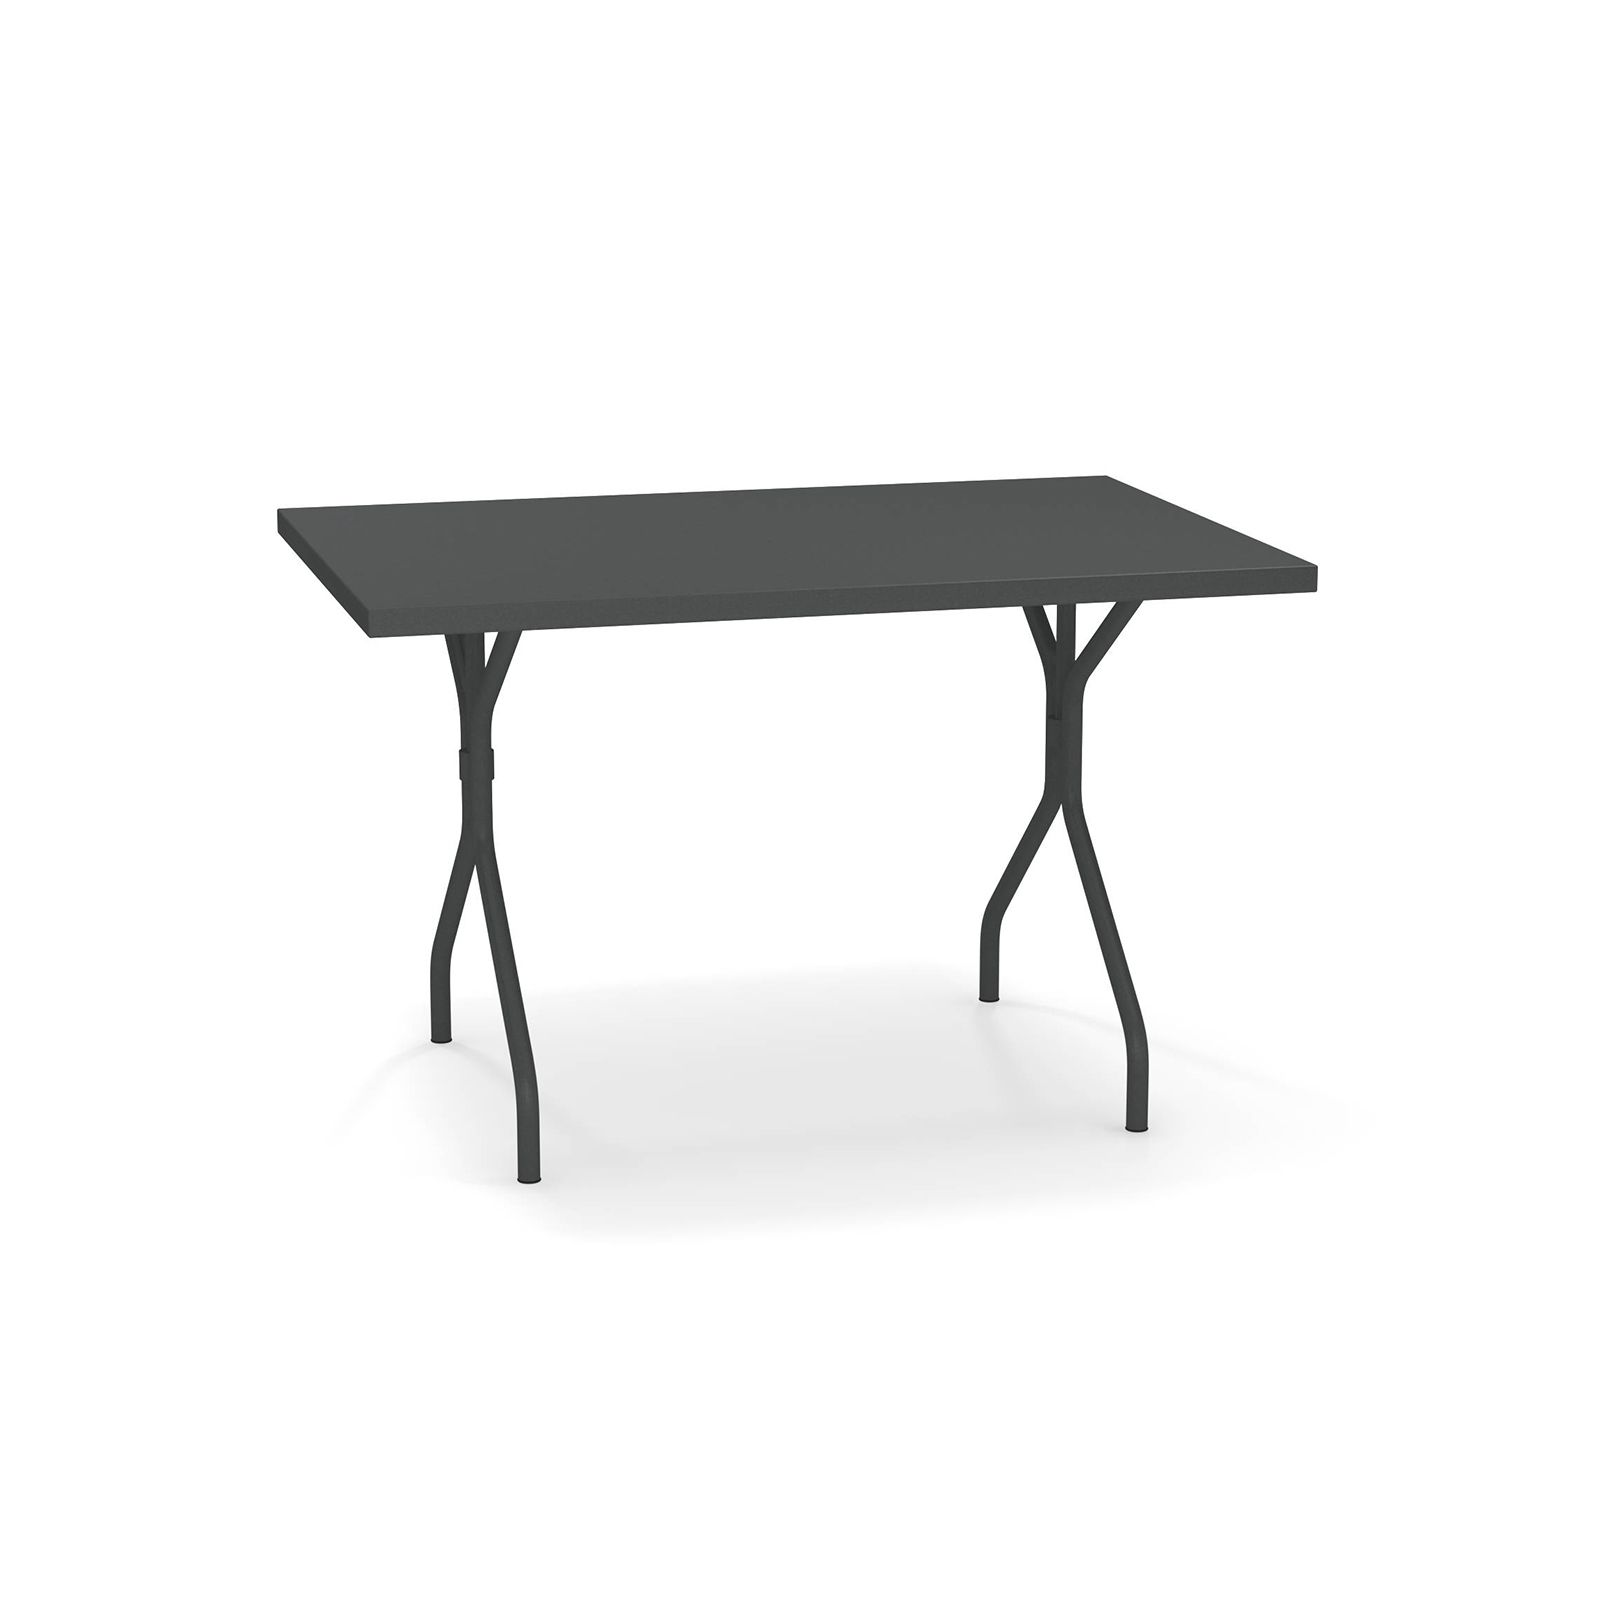 SOLID OUTDOOR TABLE